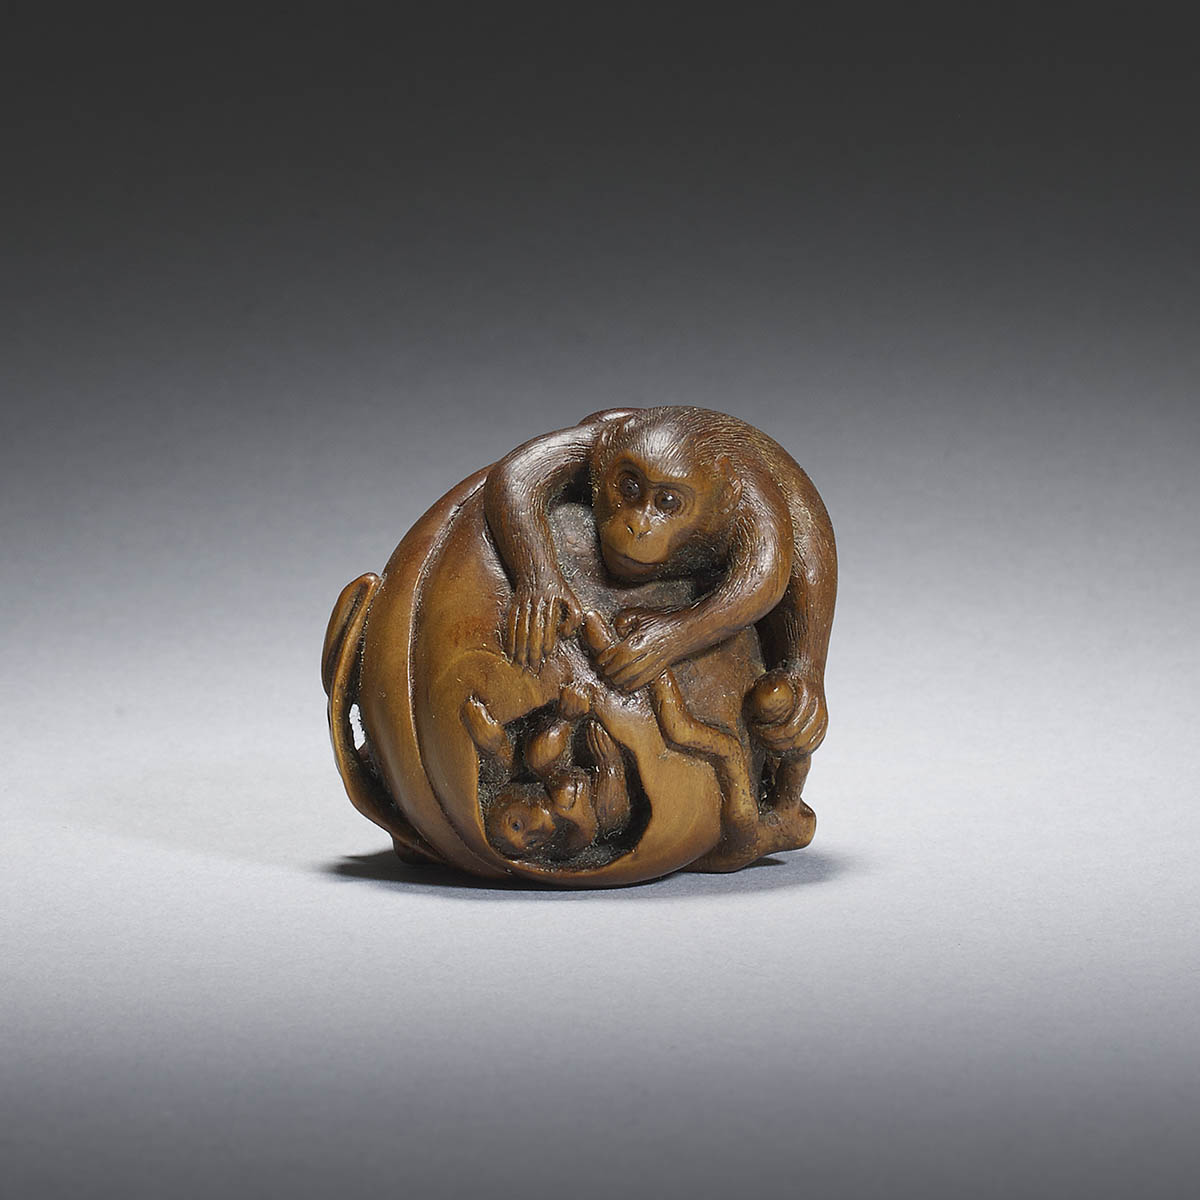 Boxwood netsuke of monkeys on a giant peach